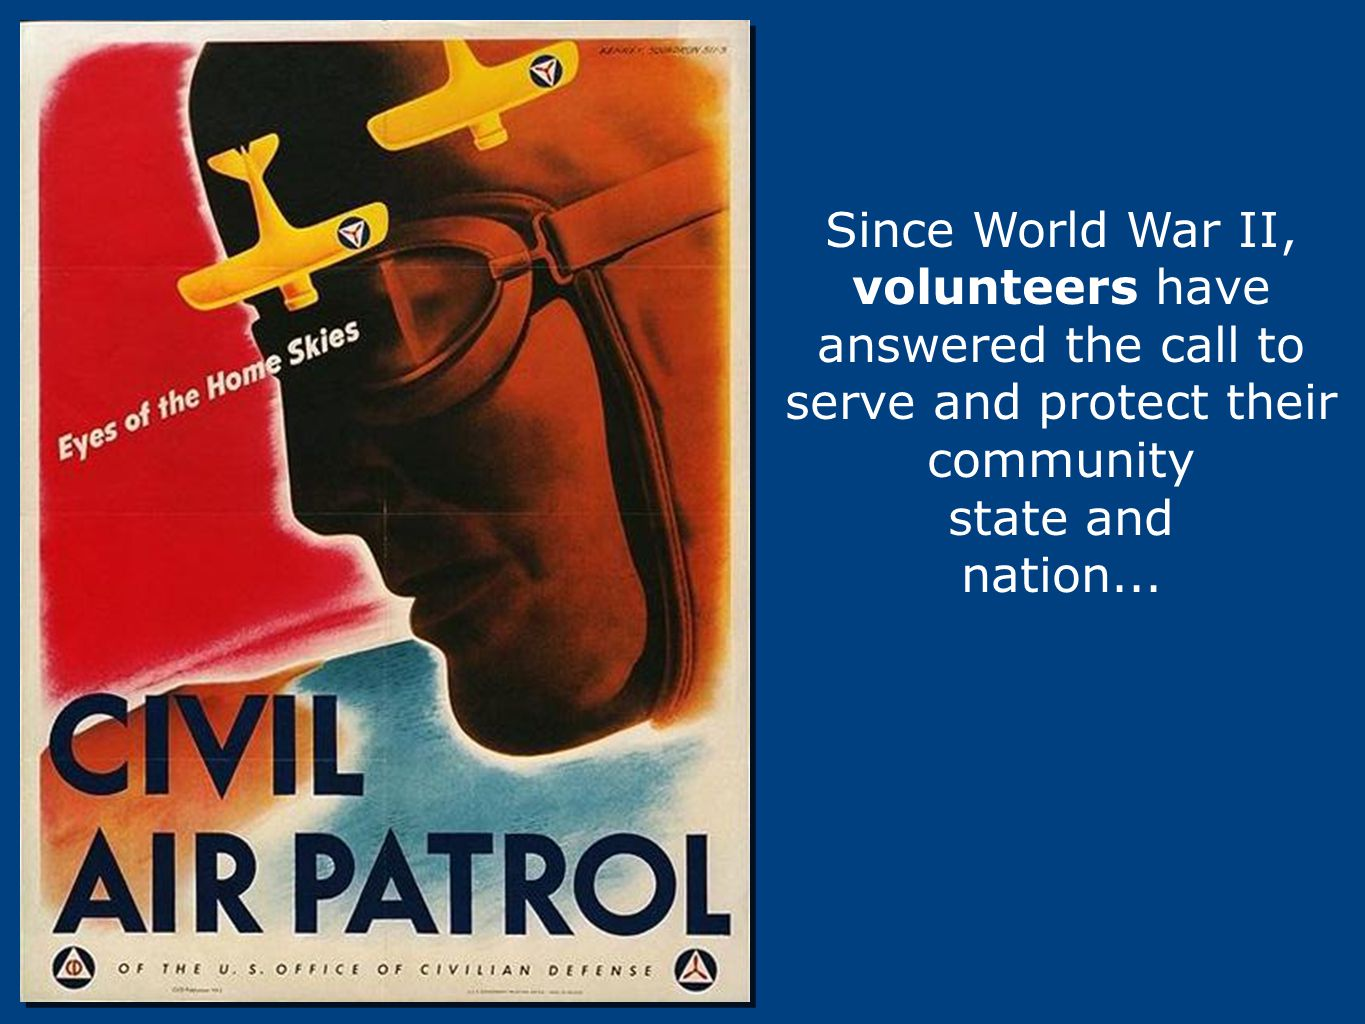 Since World War II, volunteers have answered the call to serve and protect their community